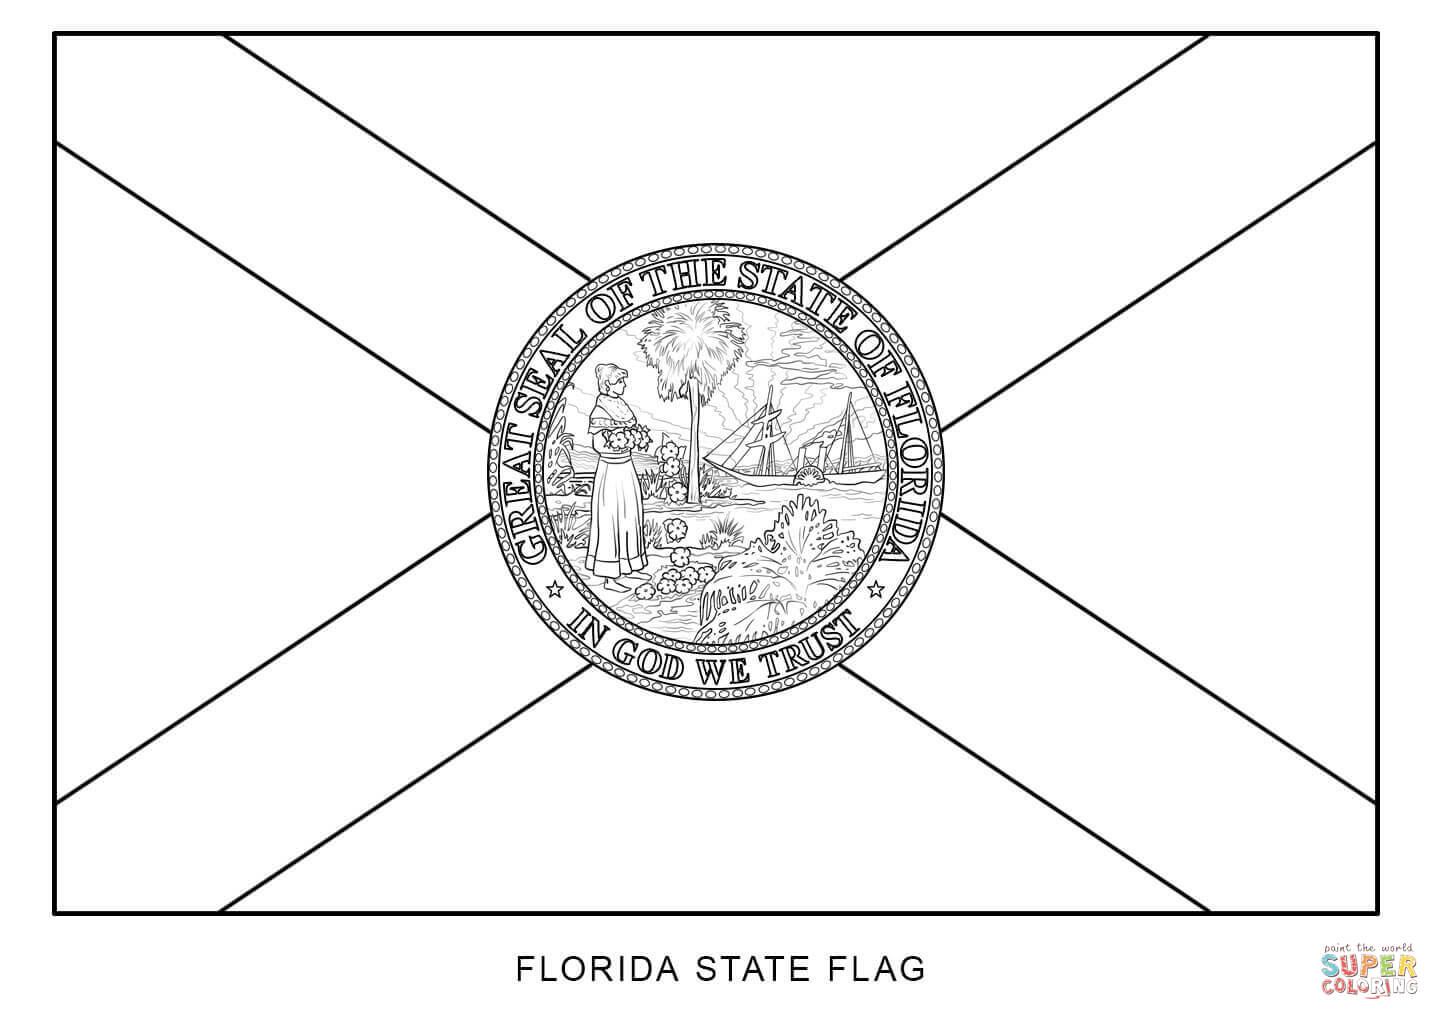 how to draw florida state flag colouring book of flags united states of america draw state how florida flag to